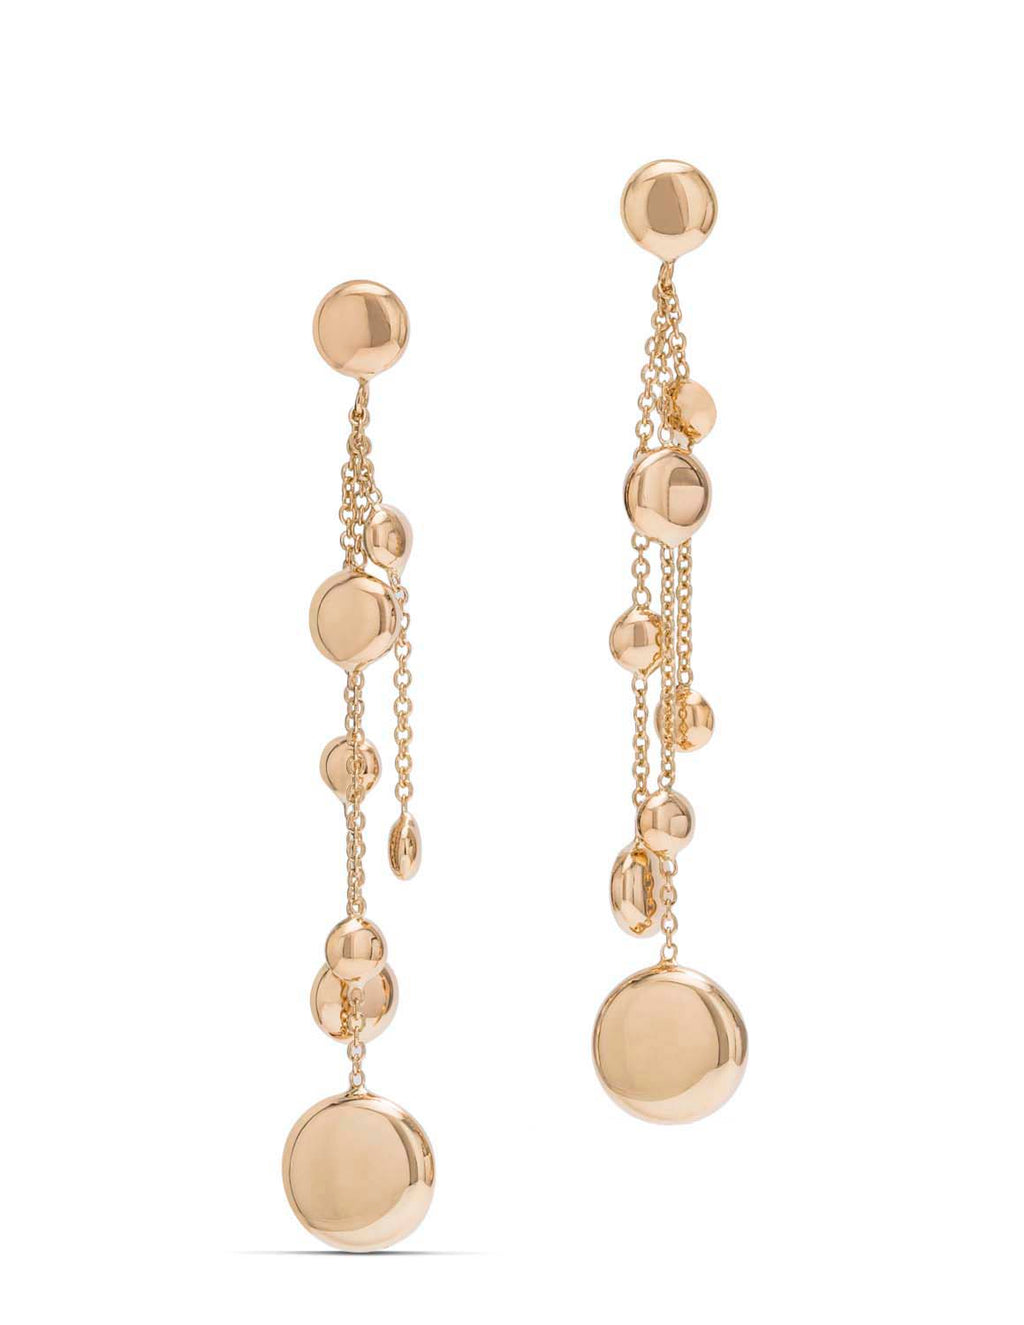 Yellow Gold Rain Drop Earrings - Charles Koll Jewellers